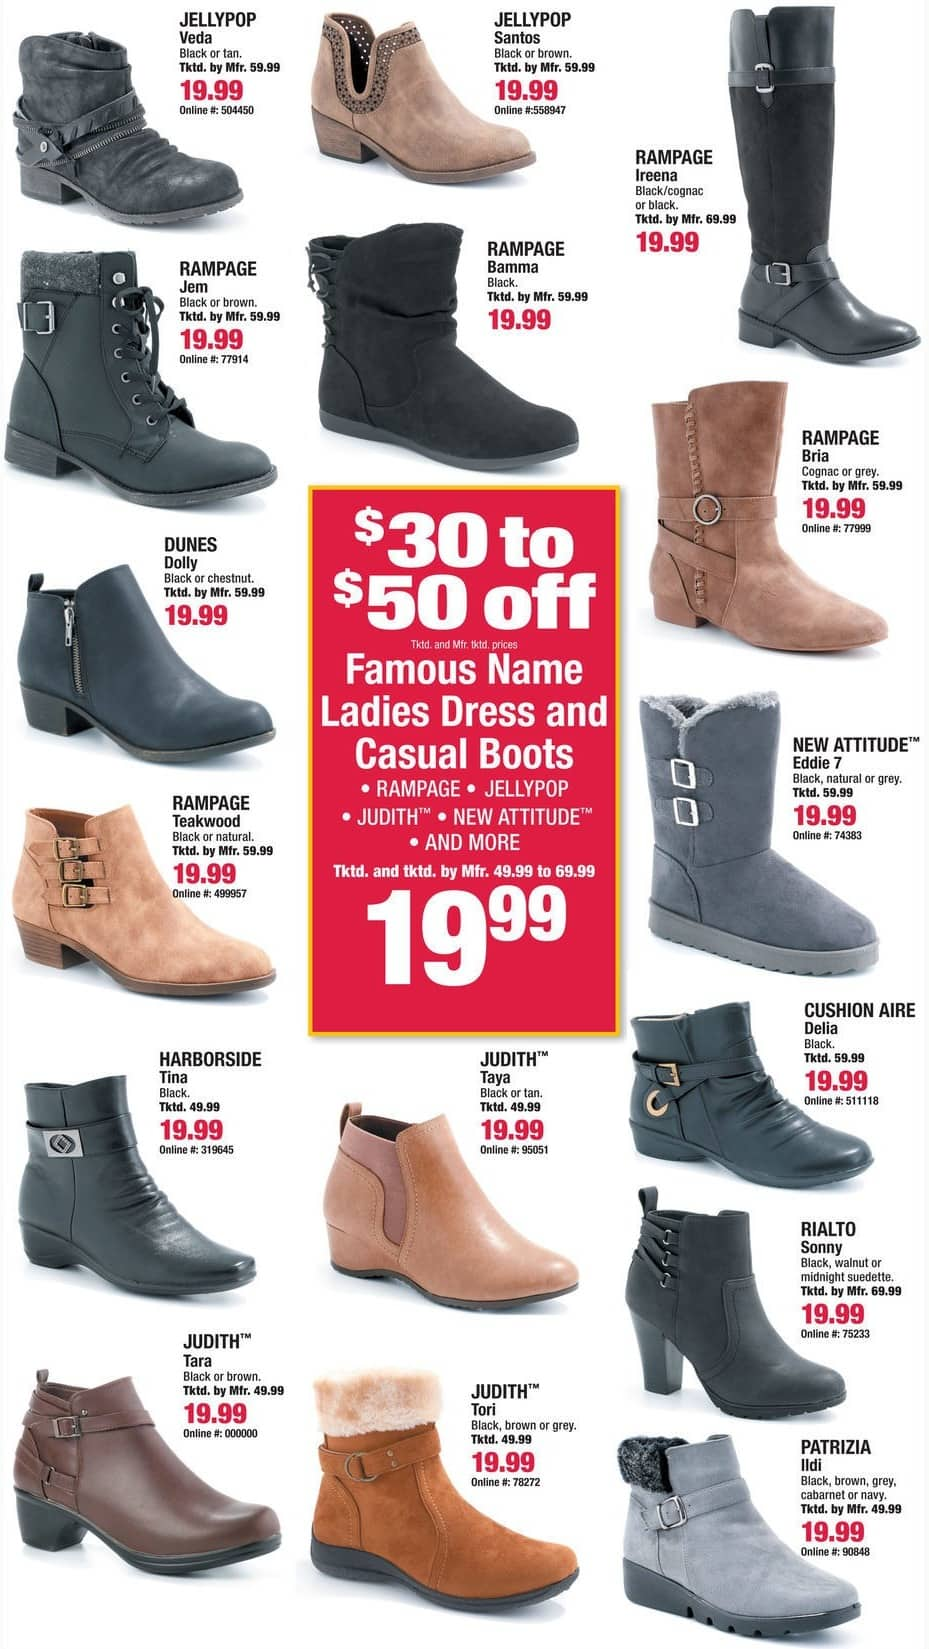 Boscov's Black Friday: Rampage, Judith, Jellypop Ladies Dress and Casual Boots, Assorted Colors and Styles for $19.99